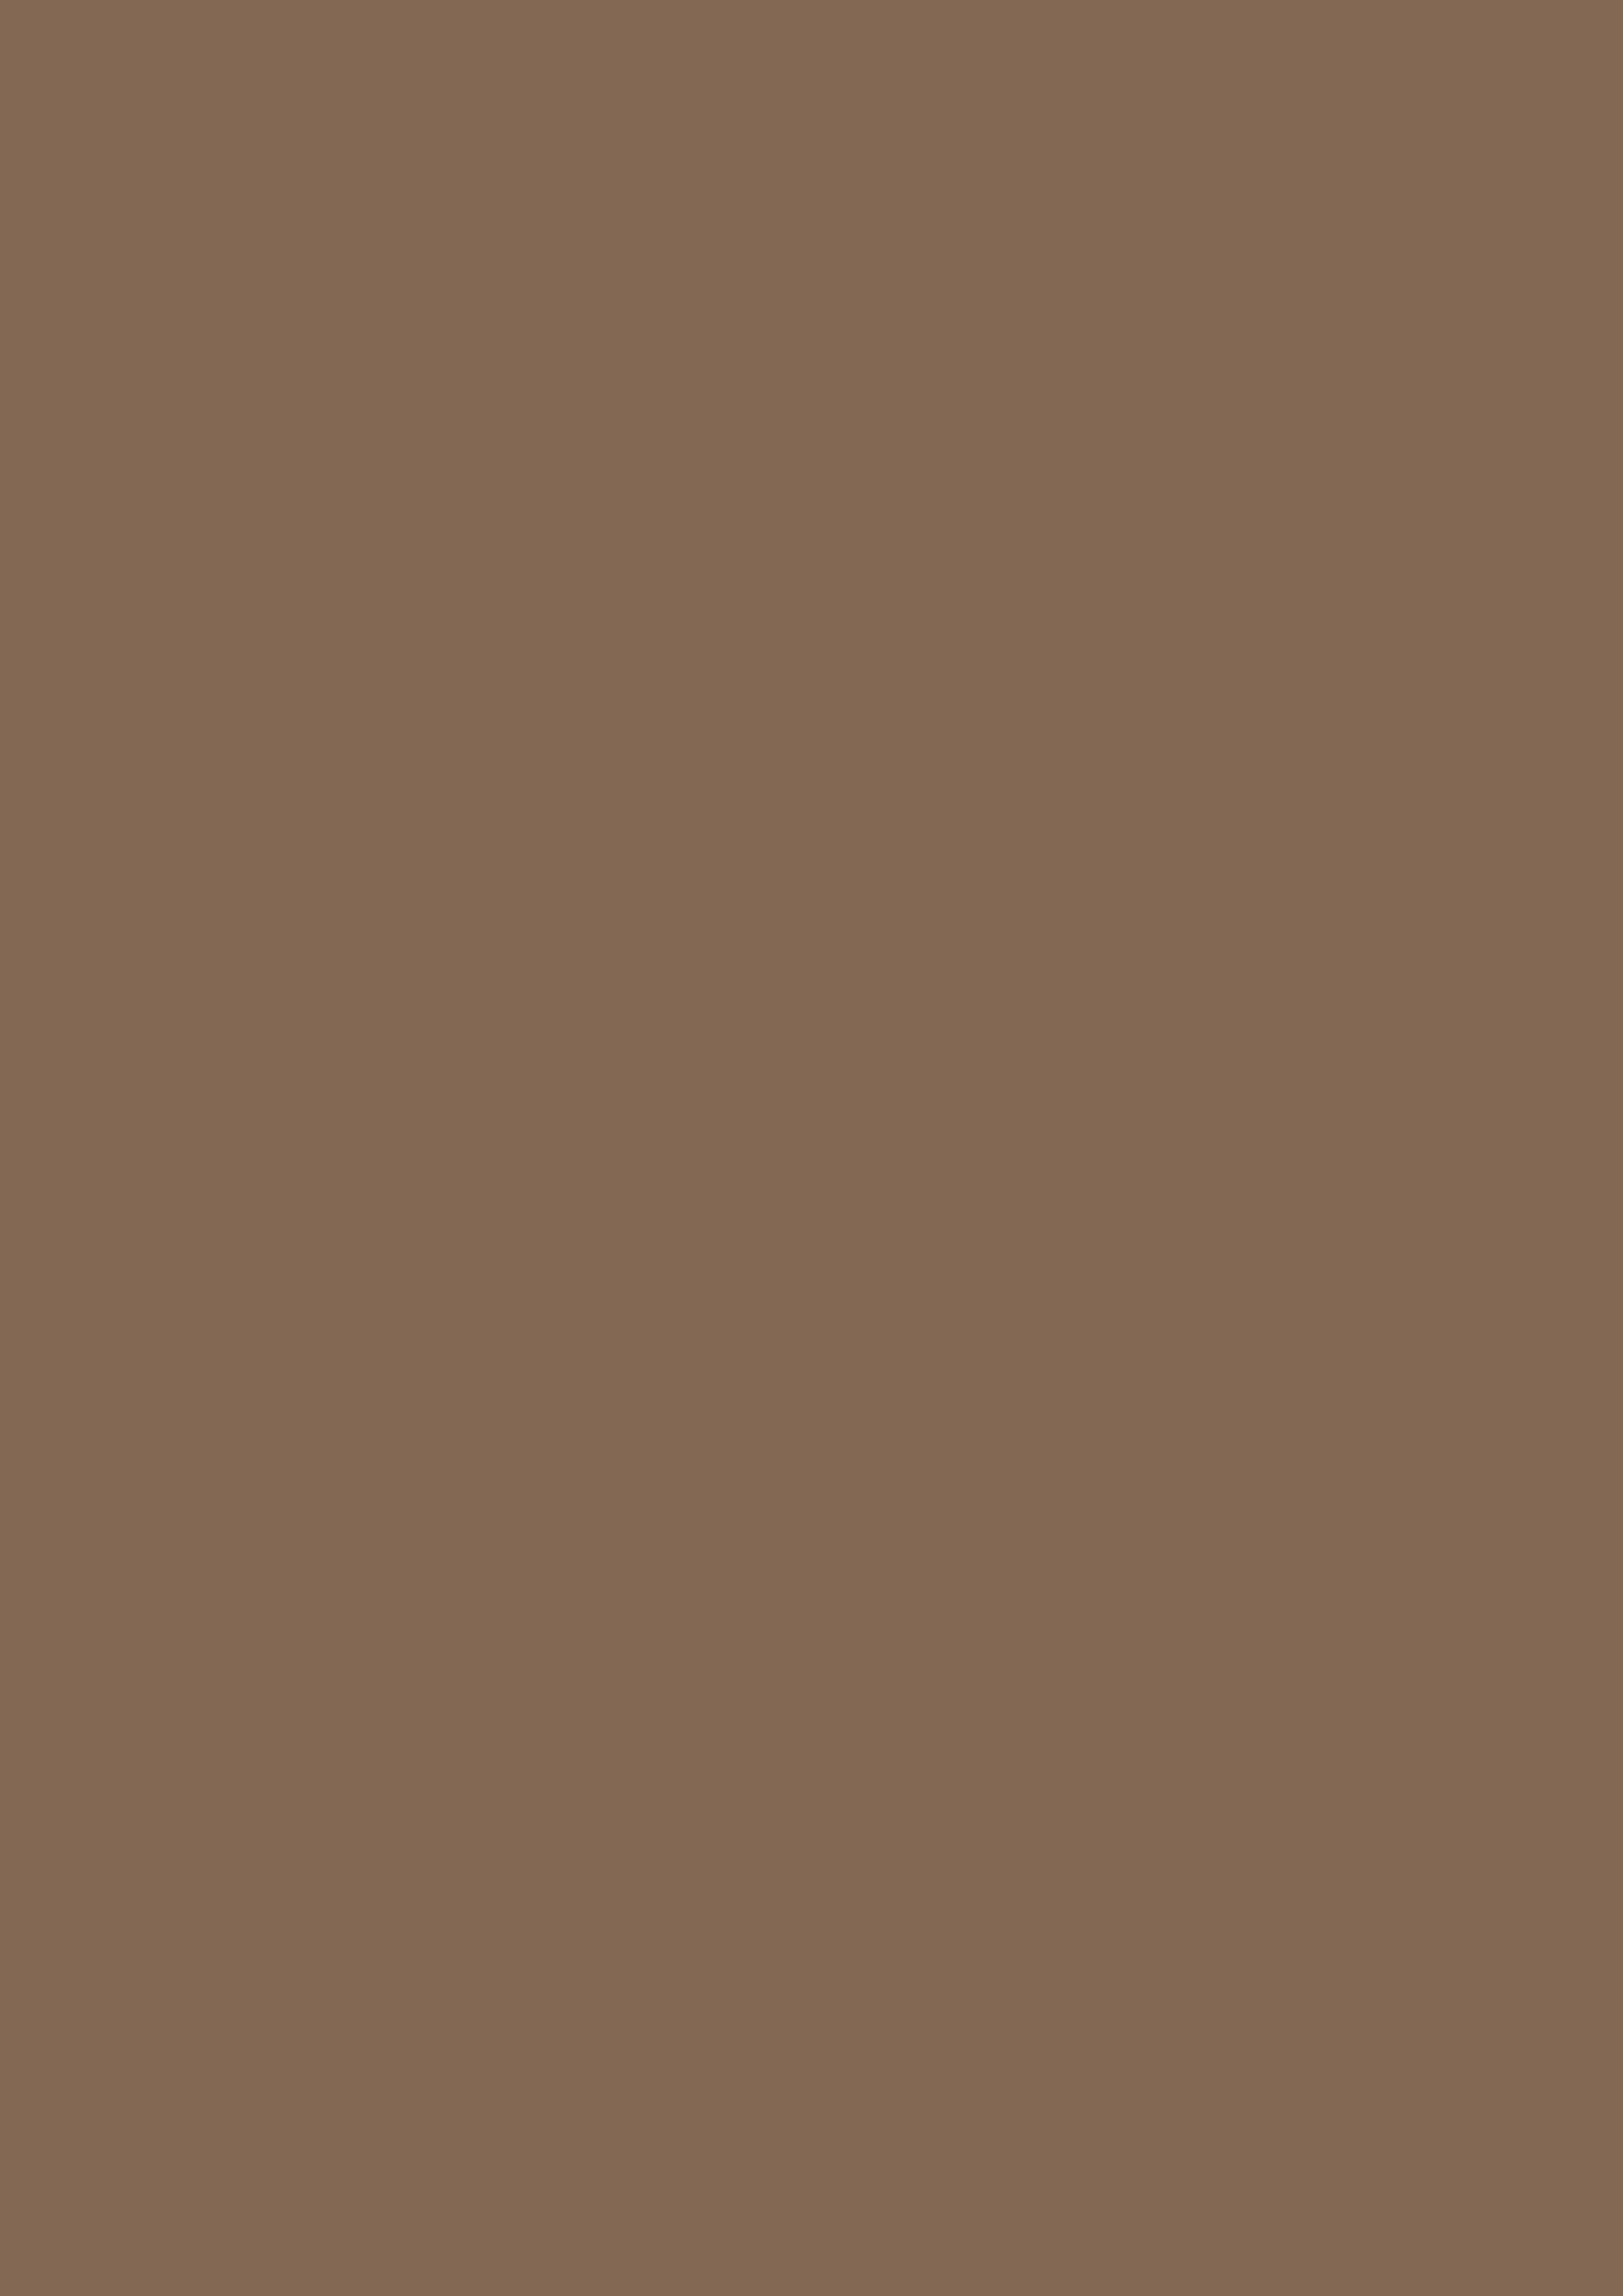 2480x3508 Pastel Brown Solid Color Background